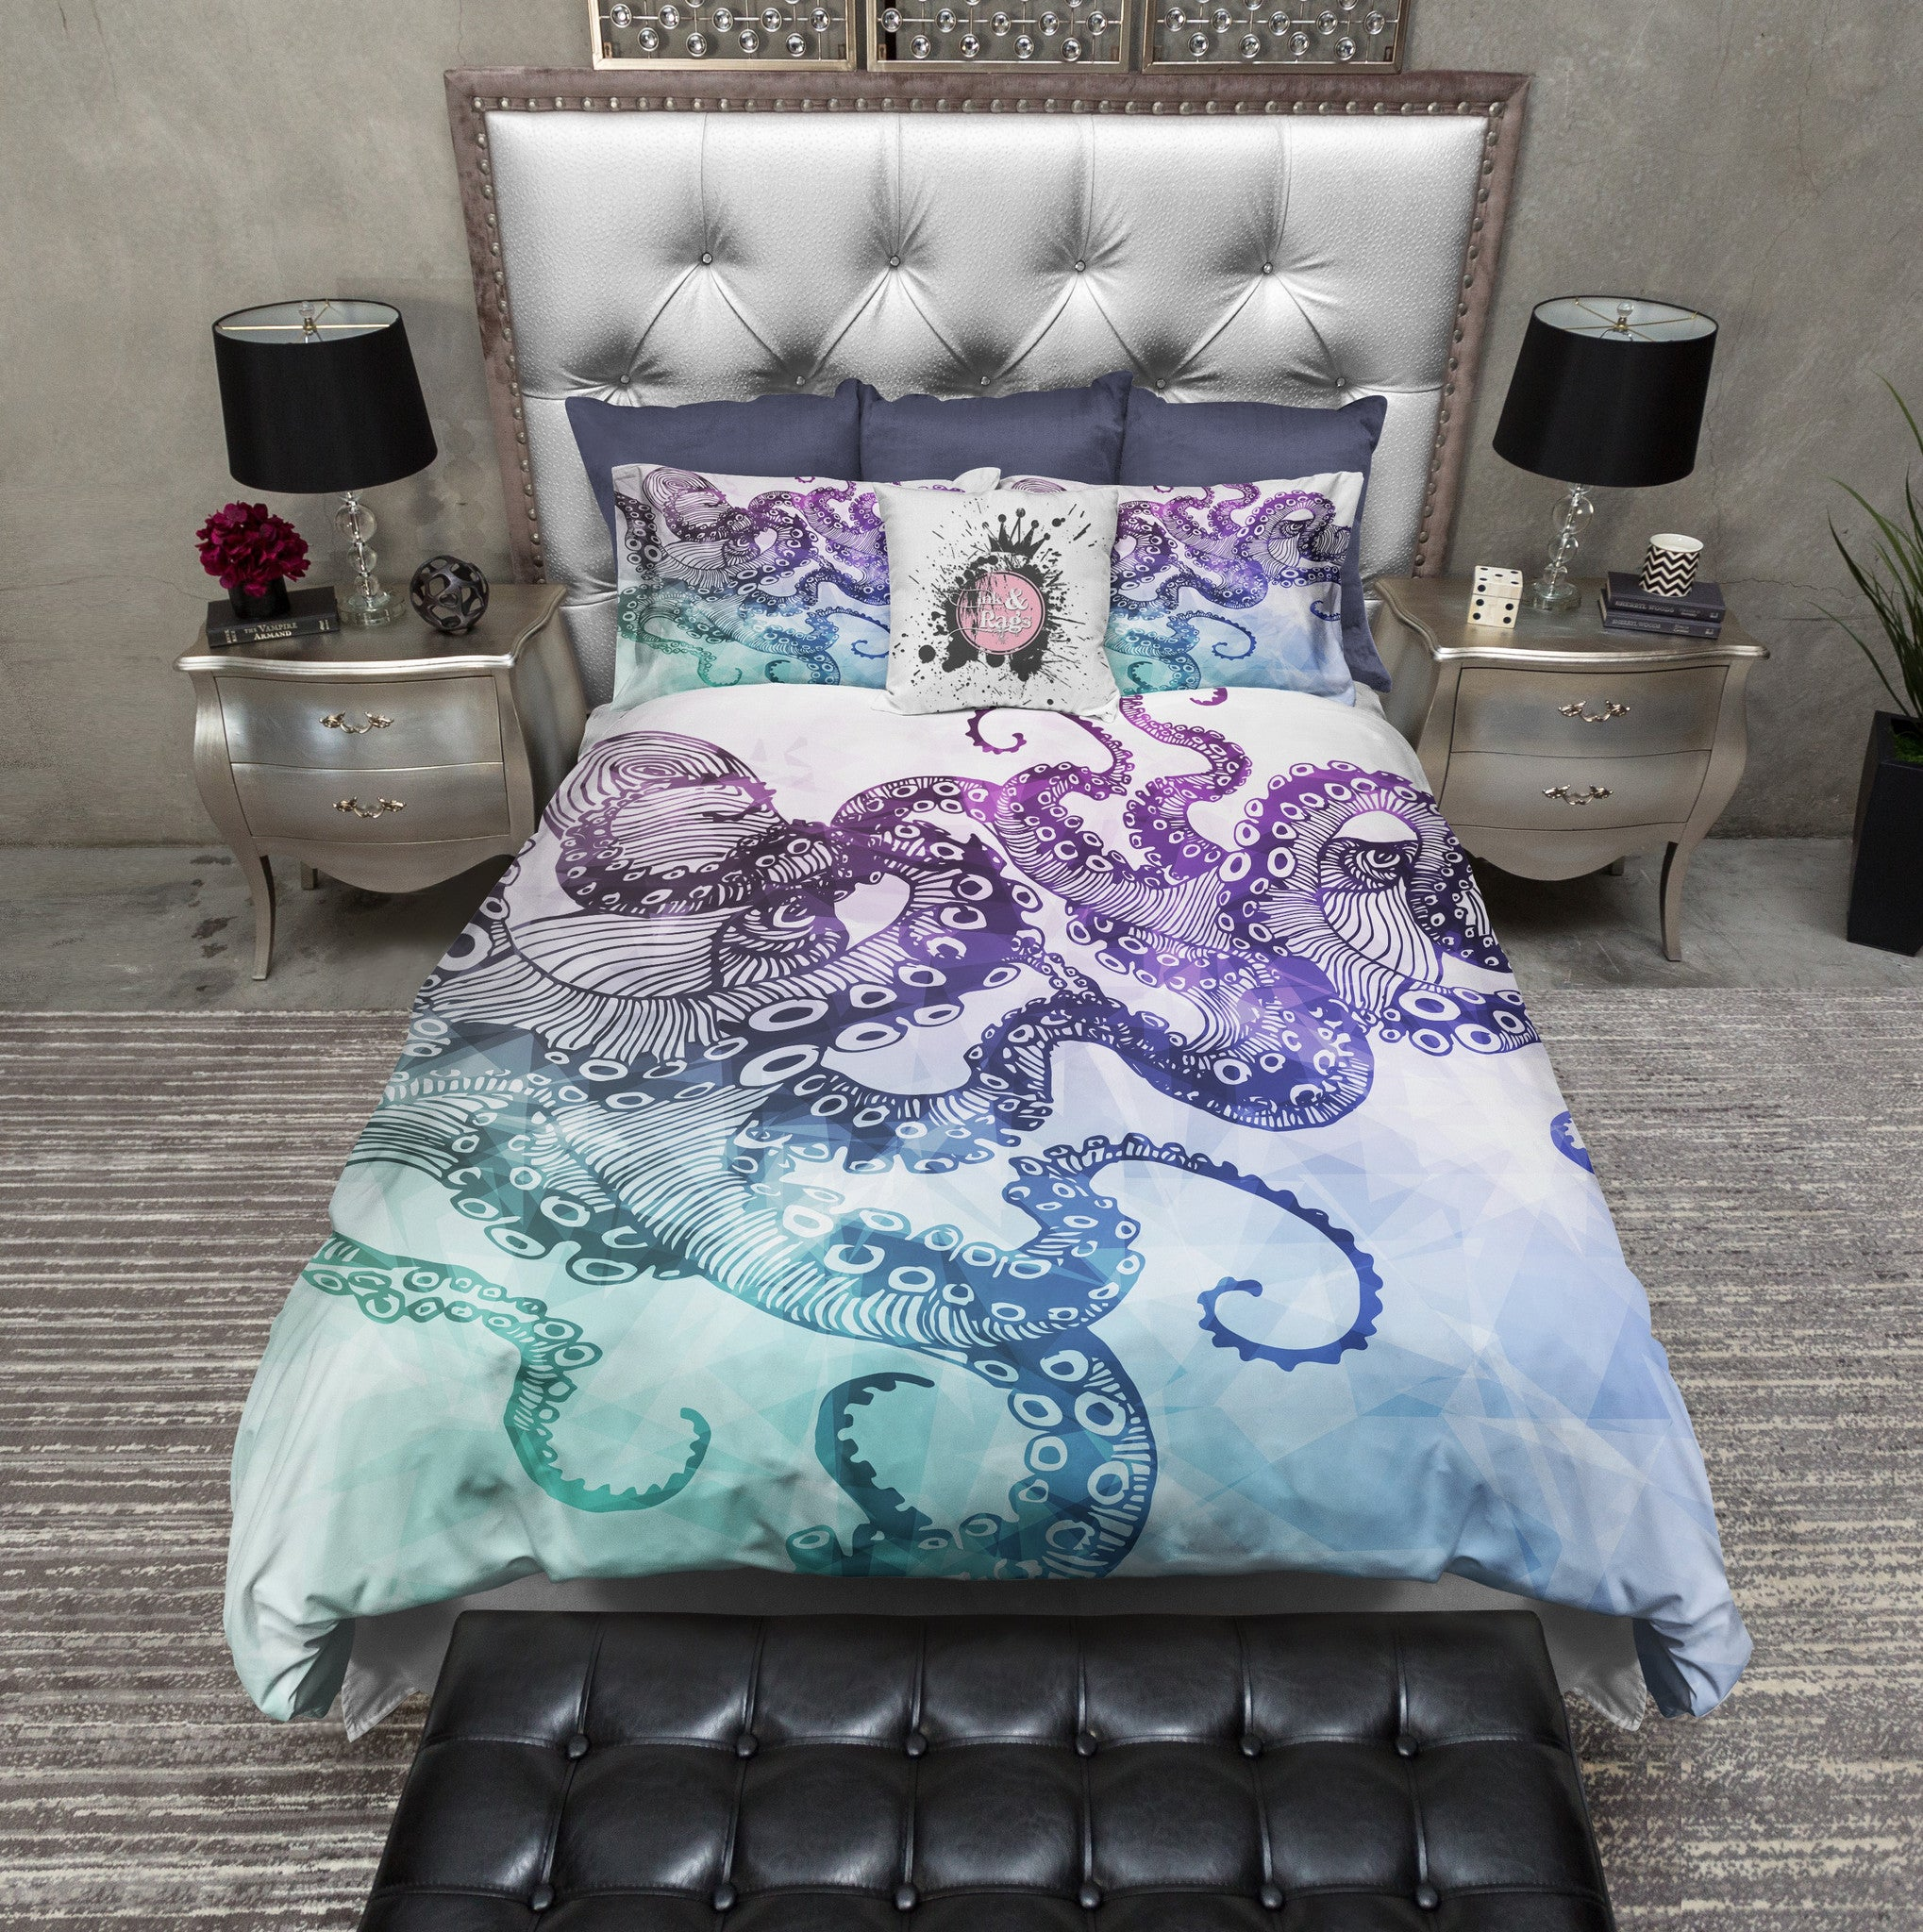 Bedroom Decor Curtains Modern Bedroom Bed Bedroom Sets Black Black And White Bedroom Wall Art: Modern Watercolor Octopus Bedding (White)